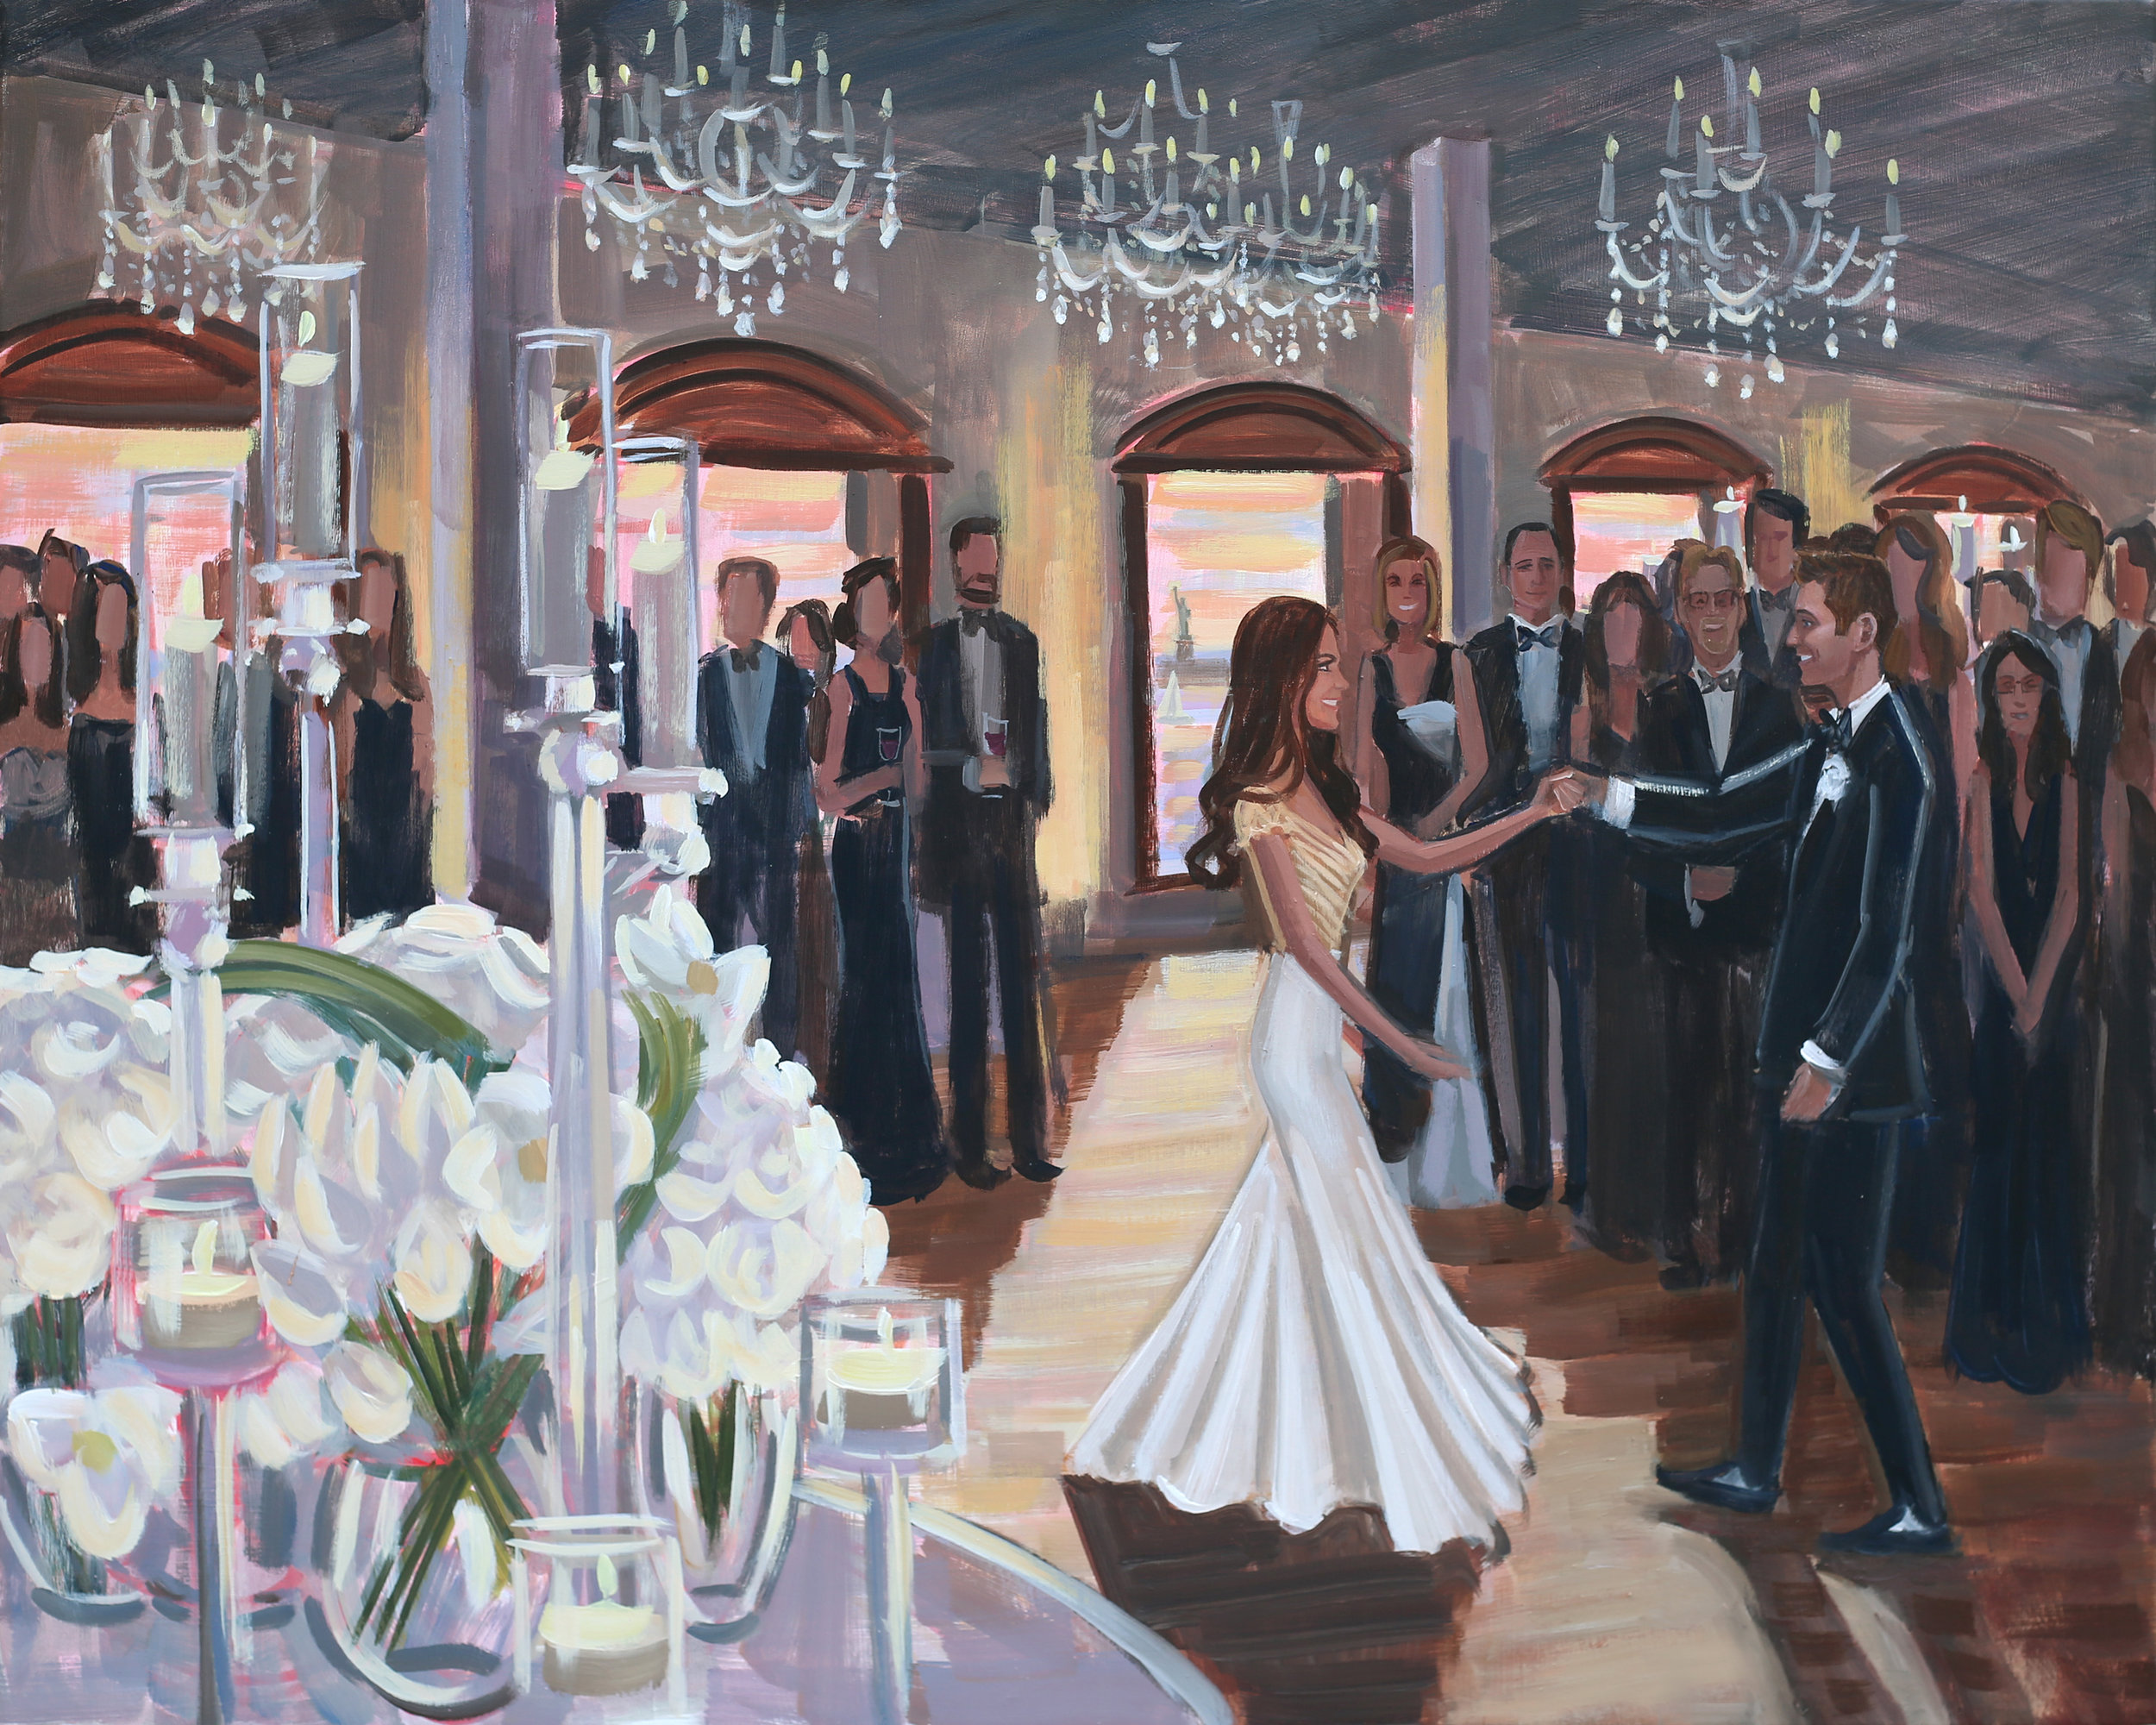 Live Wedding Painter, Ben Keys, captured Samara + Drew's romantic first dance at Brooklyn's Liberty Warehouse.